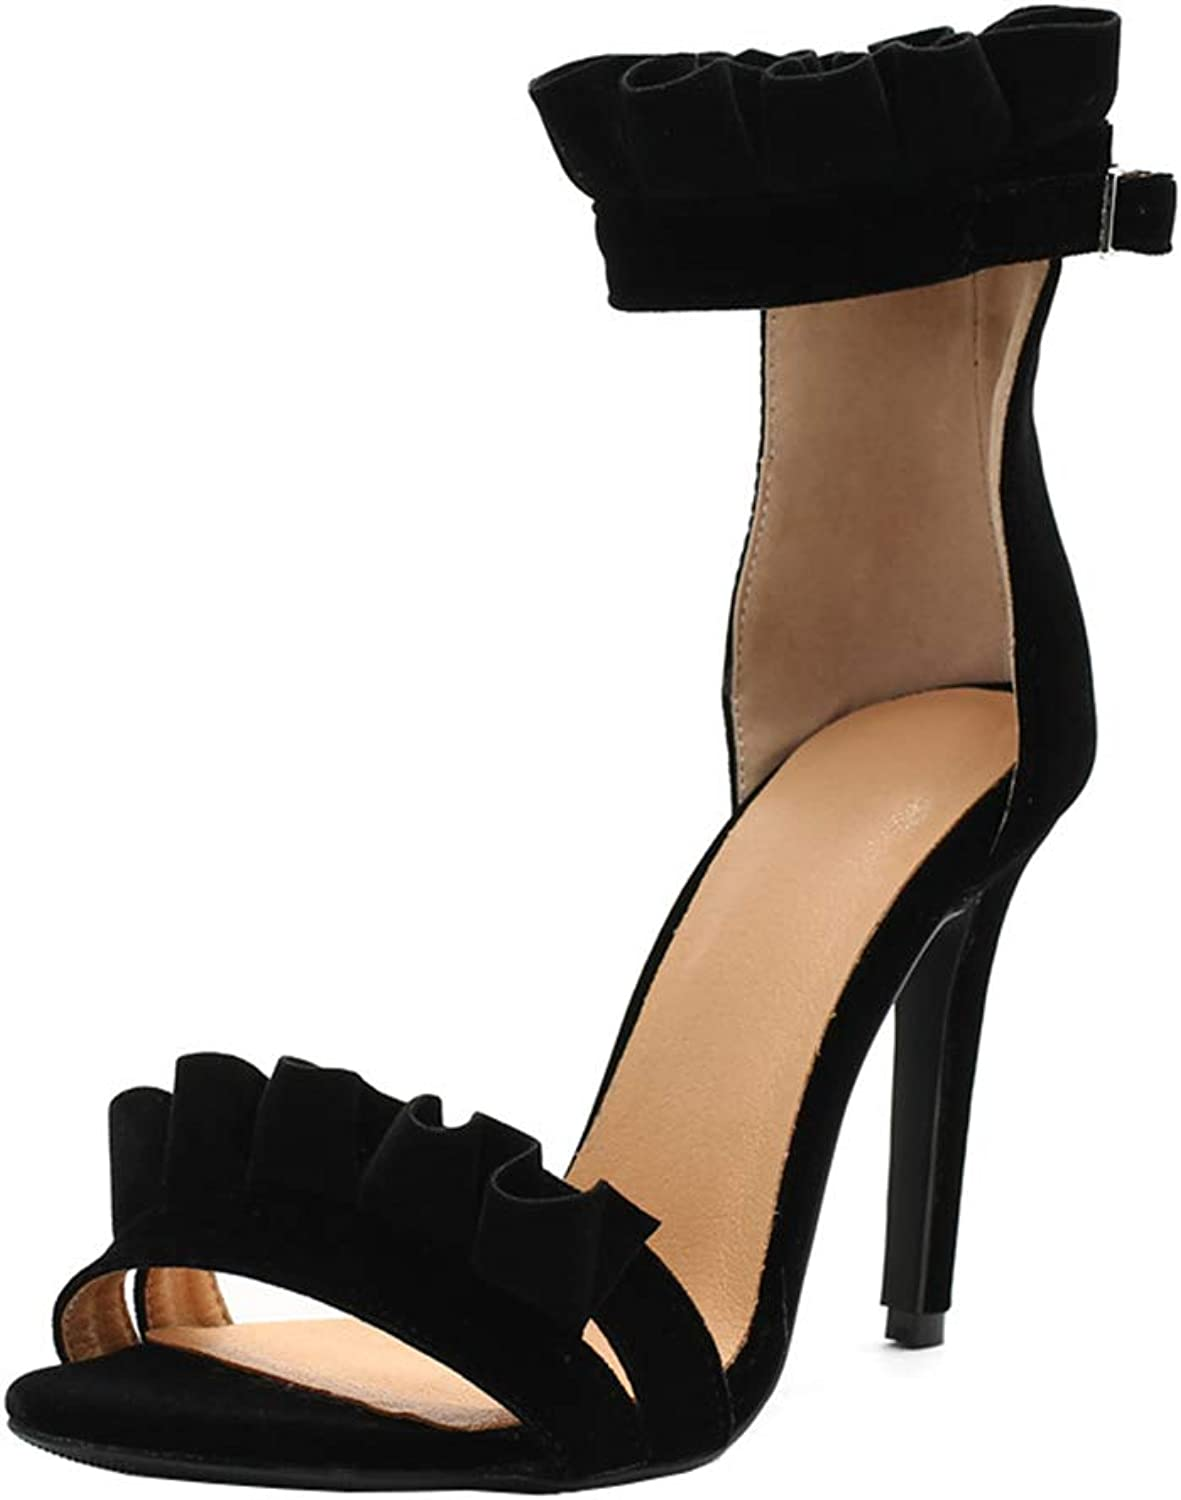 XDLEX Women Suede Lacework Strappy Heeled Sandals Stiletto Ankle Buckle Strap One Strap Lace Ruffles Pumps Open Toe Wrap-Around Strap Cutout Backless shoes